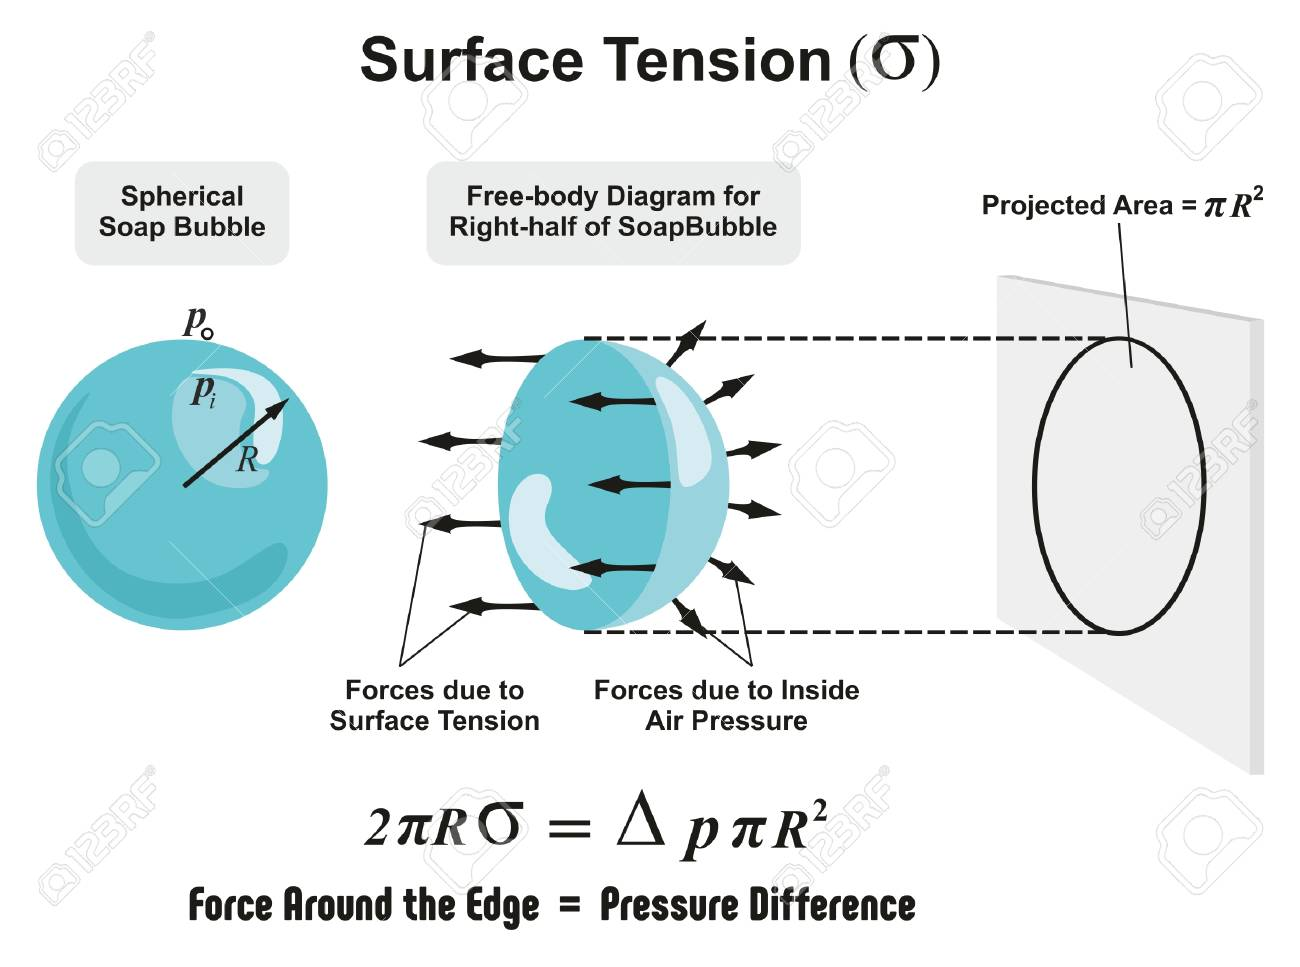 Surface Tension Physics Lesson of spherical soap bubble with all forces arrows and inside air pressure difference and projected area diagram for science education - 80631813